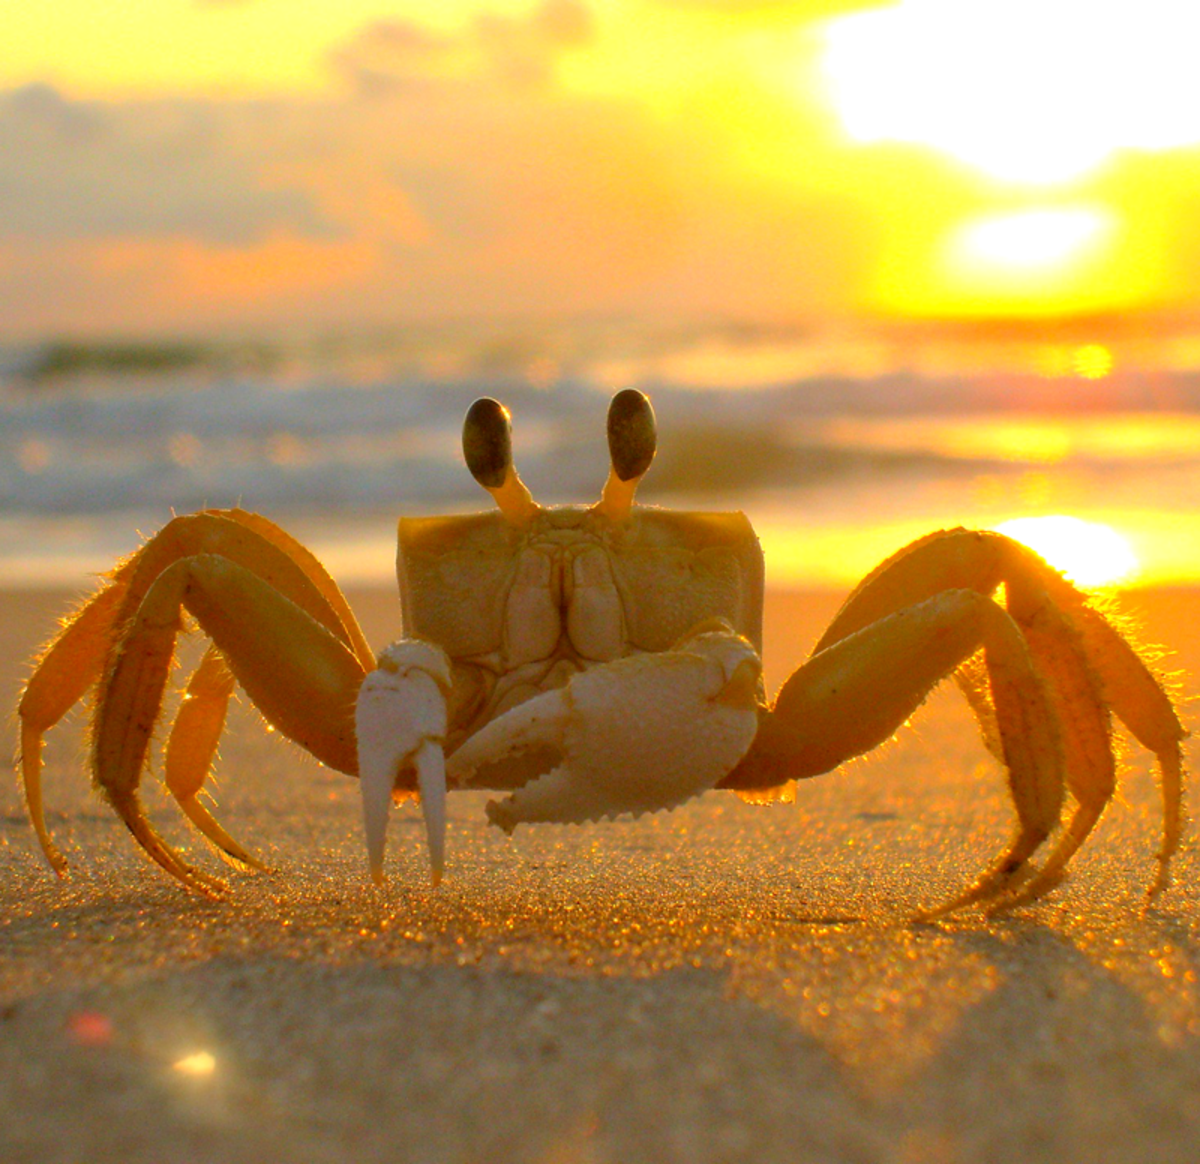 Another kind of ghost crab (Ocypode species), this is the African variety.